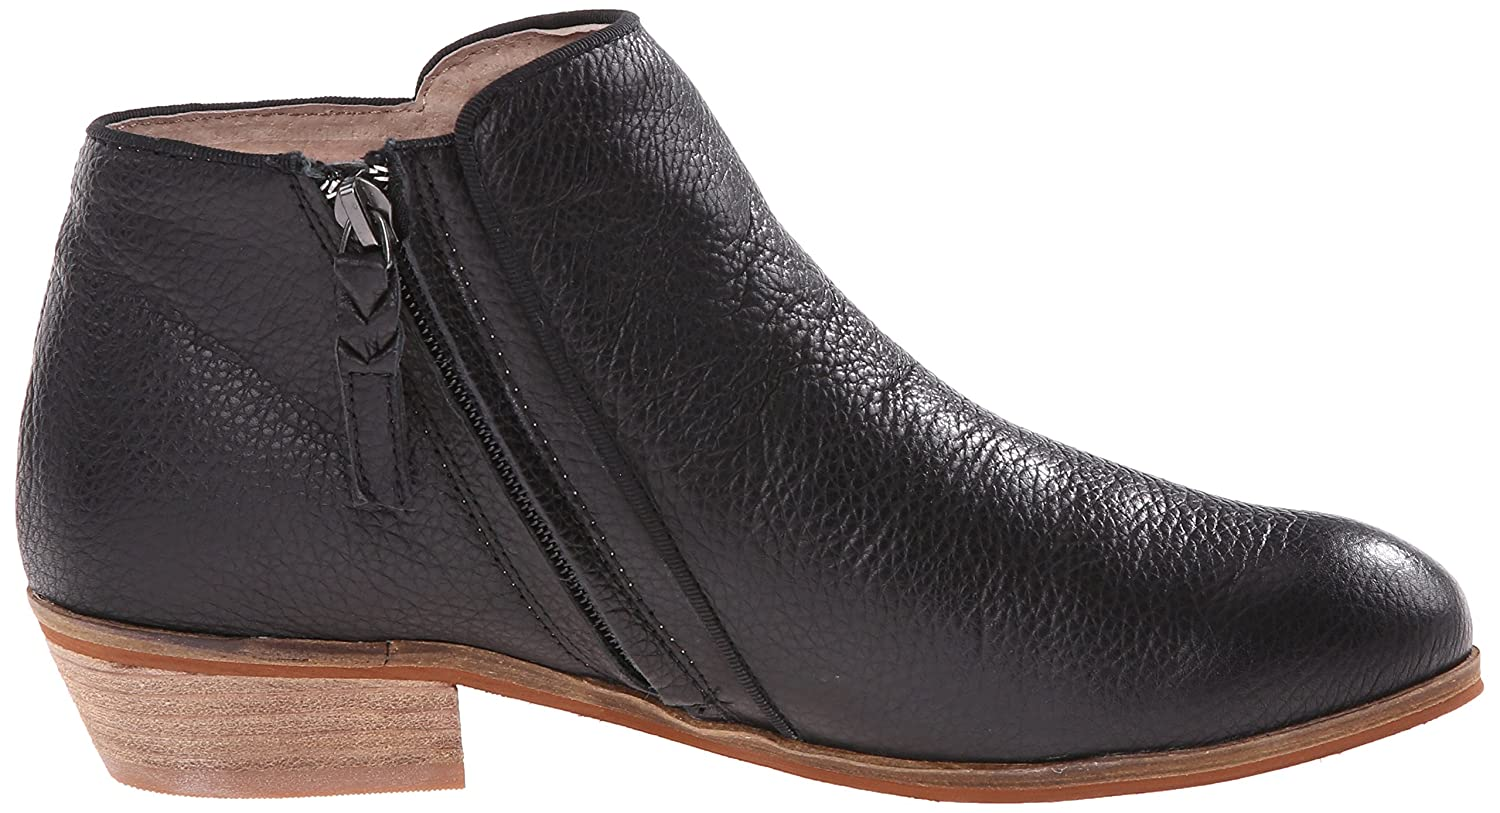 SoftWalk Women's Rocklin Chelsea Boot B00HQNH88Q 6 Leather C/D US|Black Veg Tumbled Leather 6 27202b